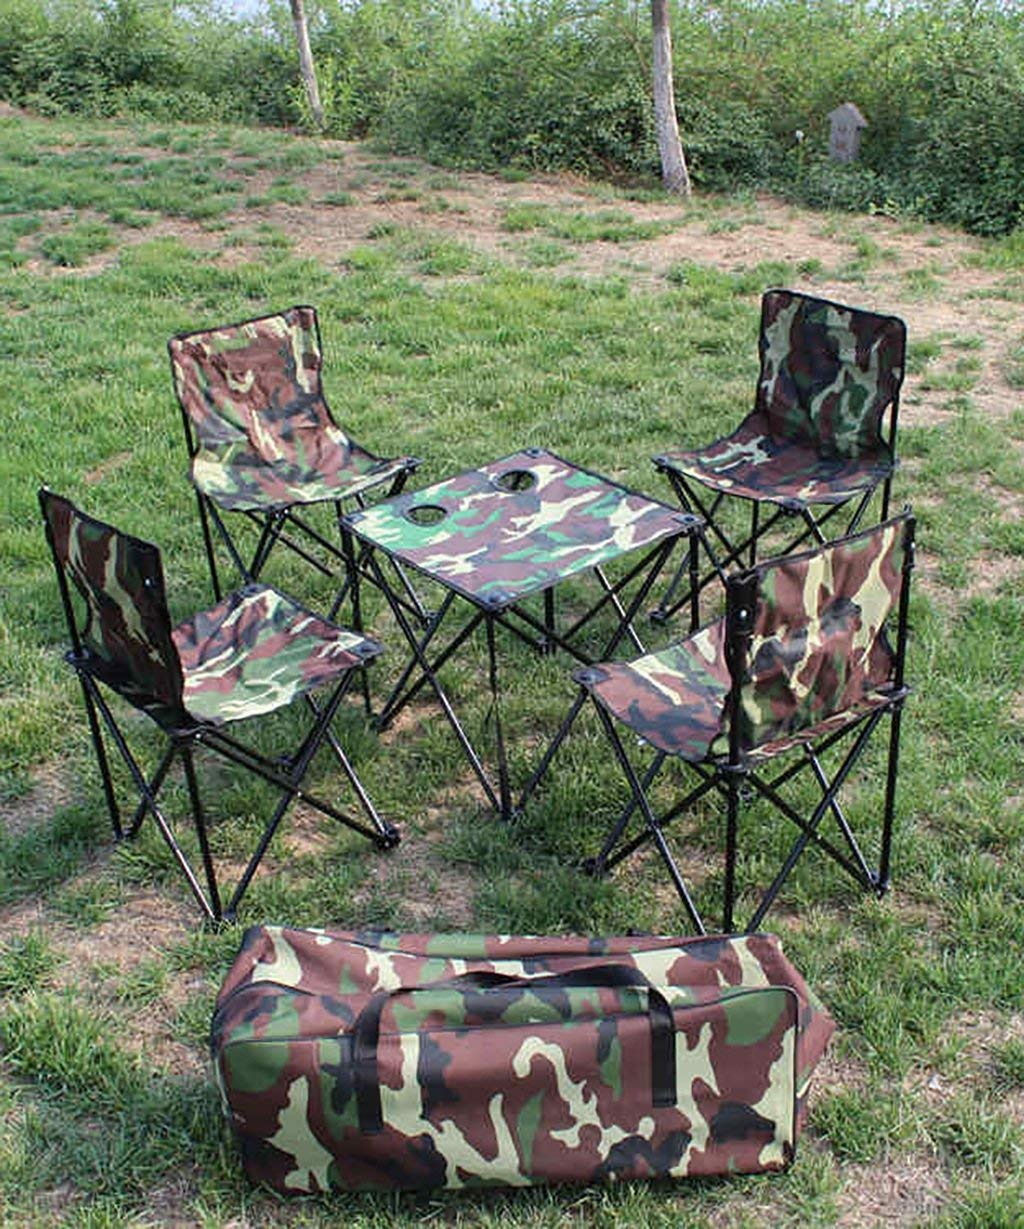 QIANGDA Foldable Portable Camping/Picnic/Barbecue/Beach Outdoor Table & Chair(4) Set Family Club (Color : Camouflage Color, Size : 454575cm)